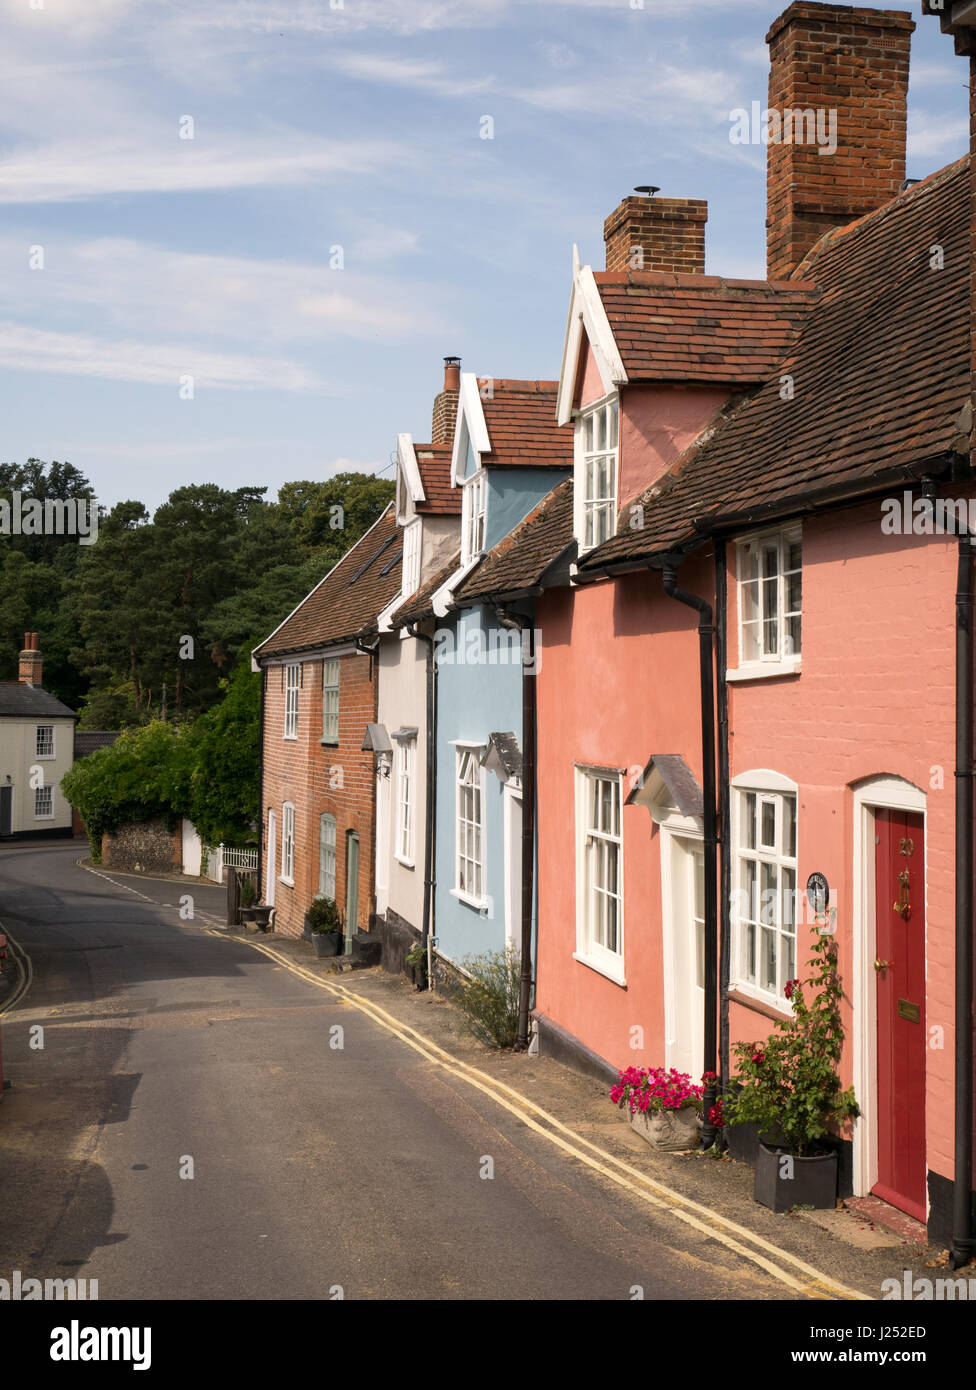 Colourful Old Cottages in Chapel Street in Woodbridge, Suffolk, England, UK - Stock Image